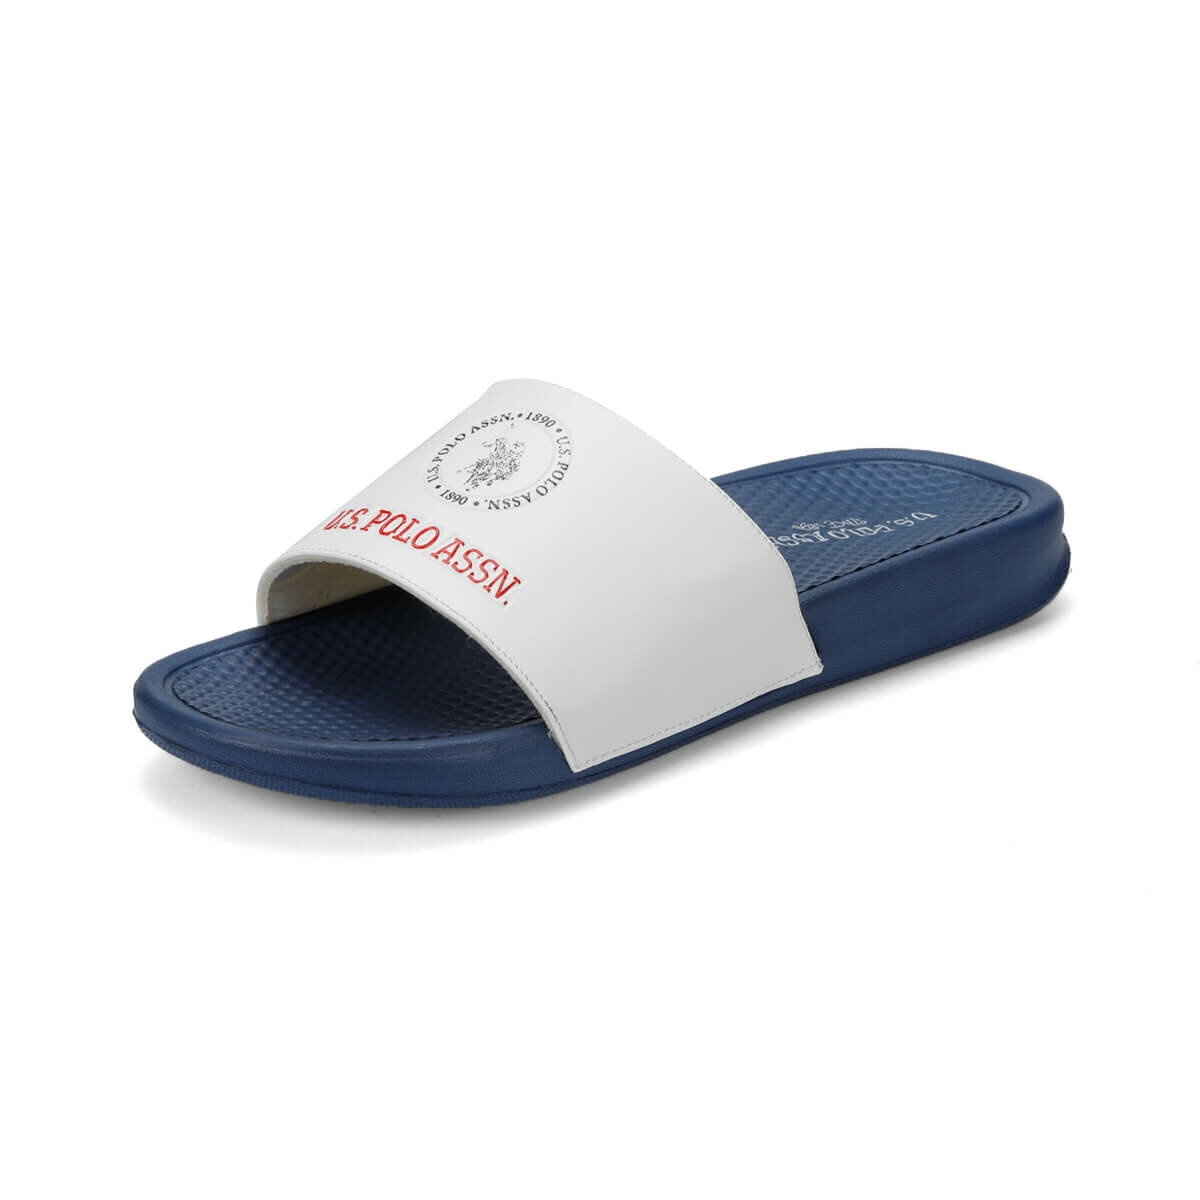 FLO PEARL White Male Slippers U.S. POLO ASSN.